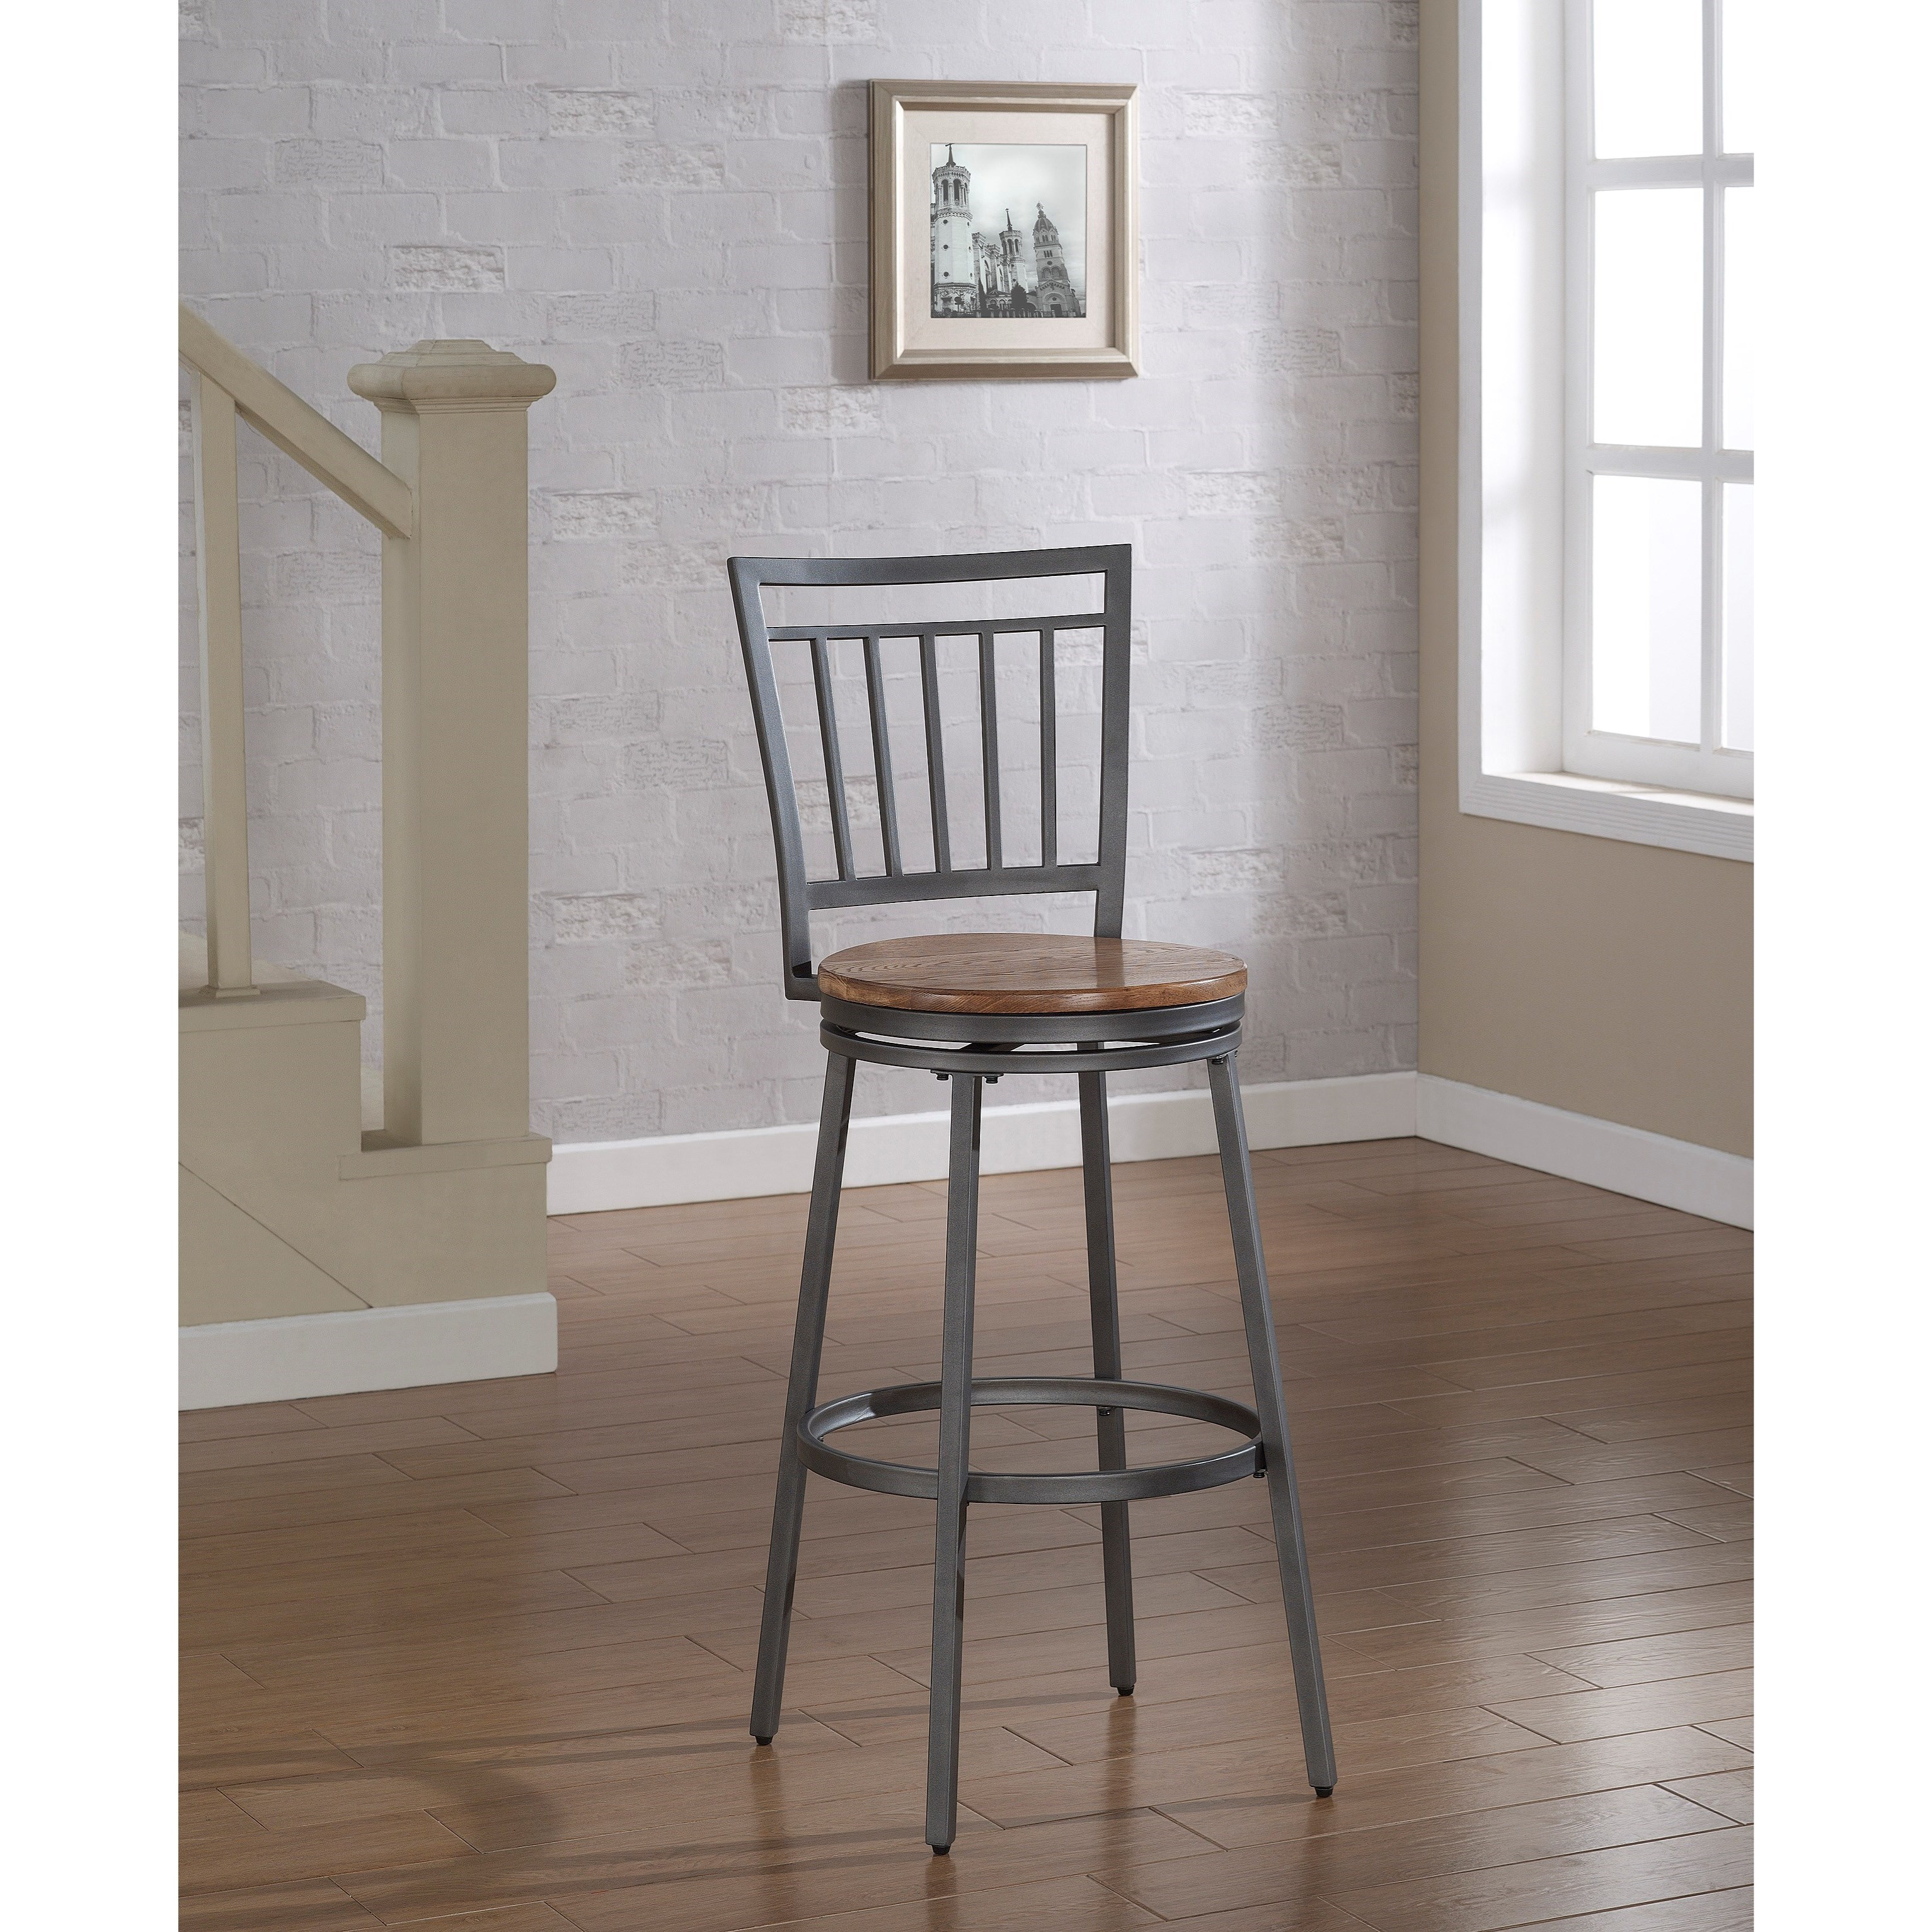 Stool with Slat Back and Metal Frame